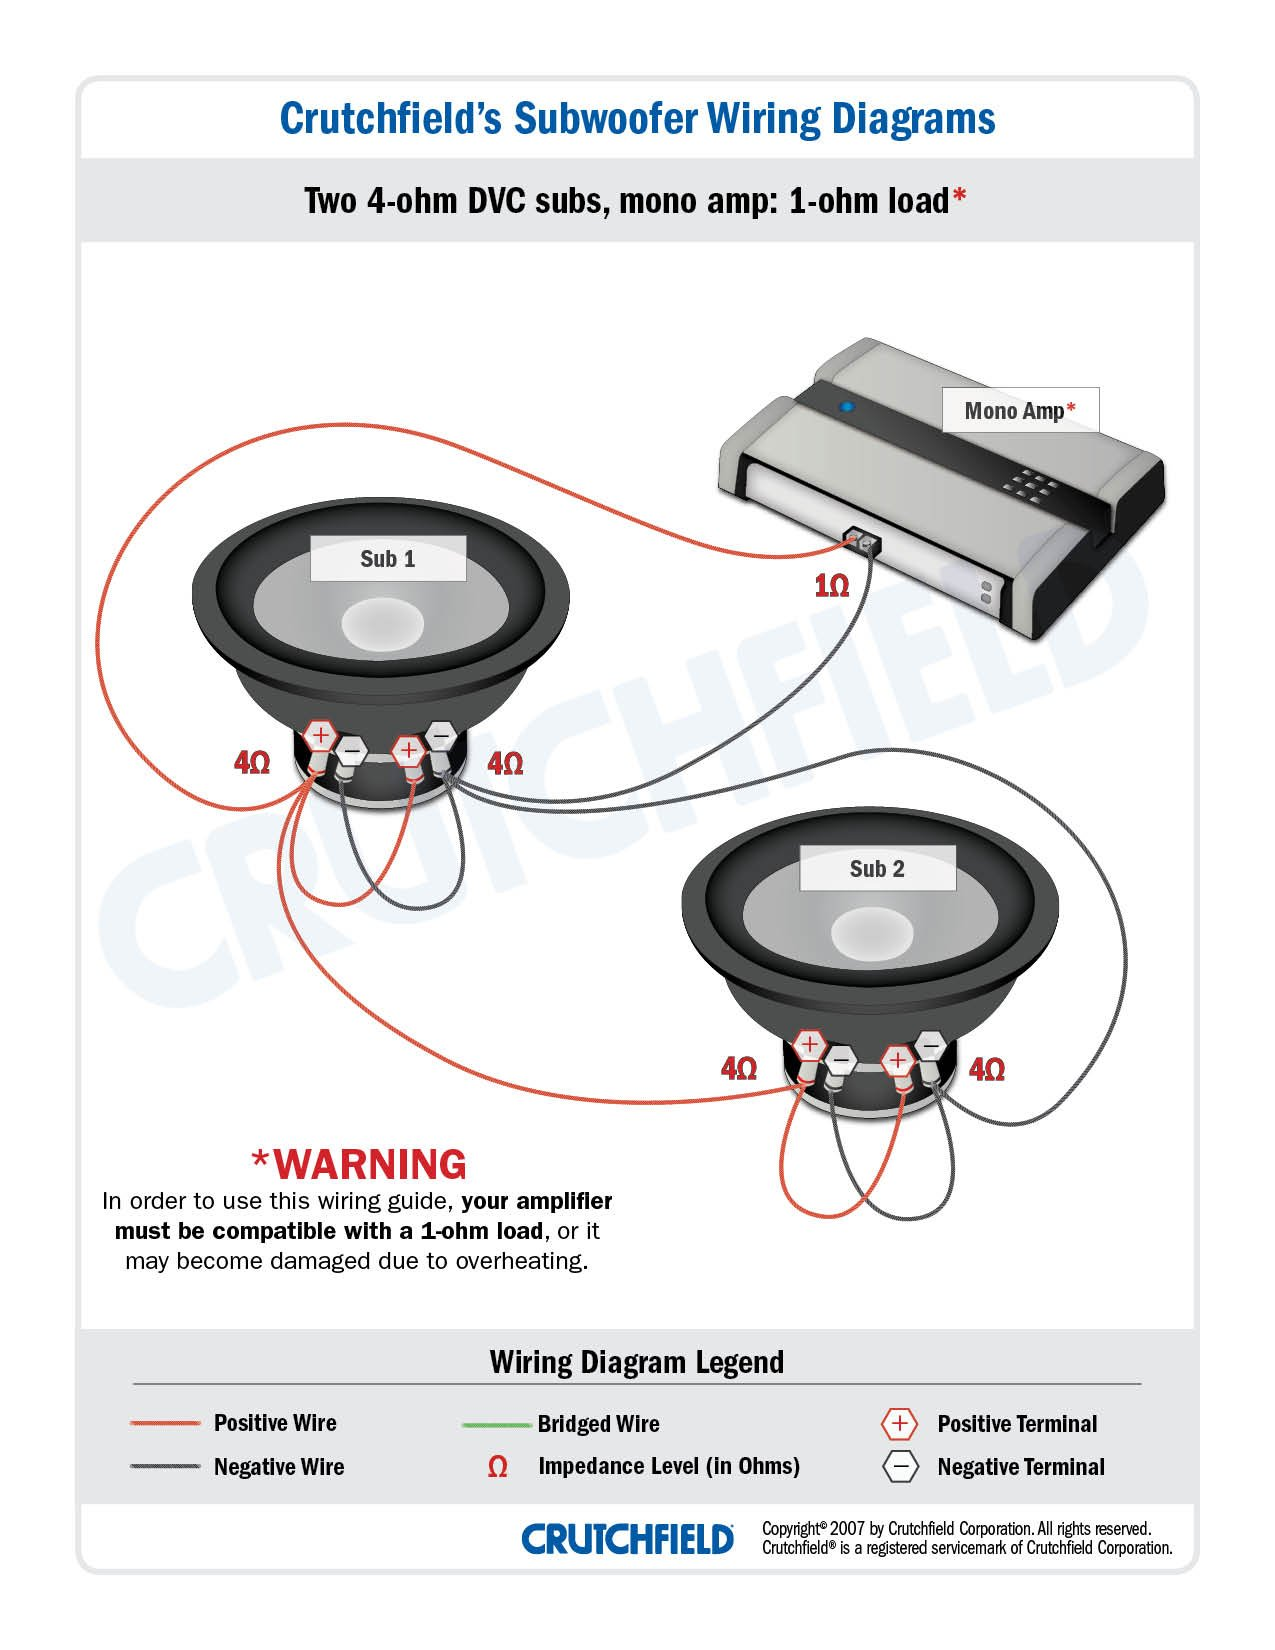 Hook up 2 subwoofers mono amp